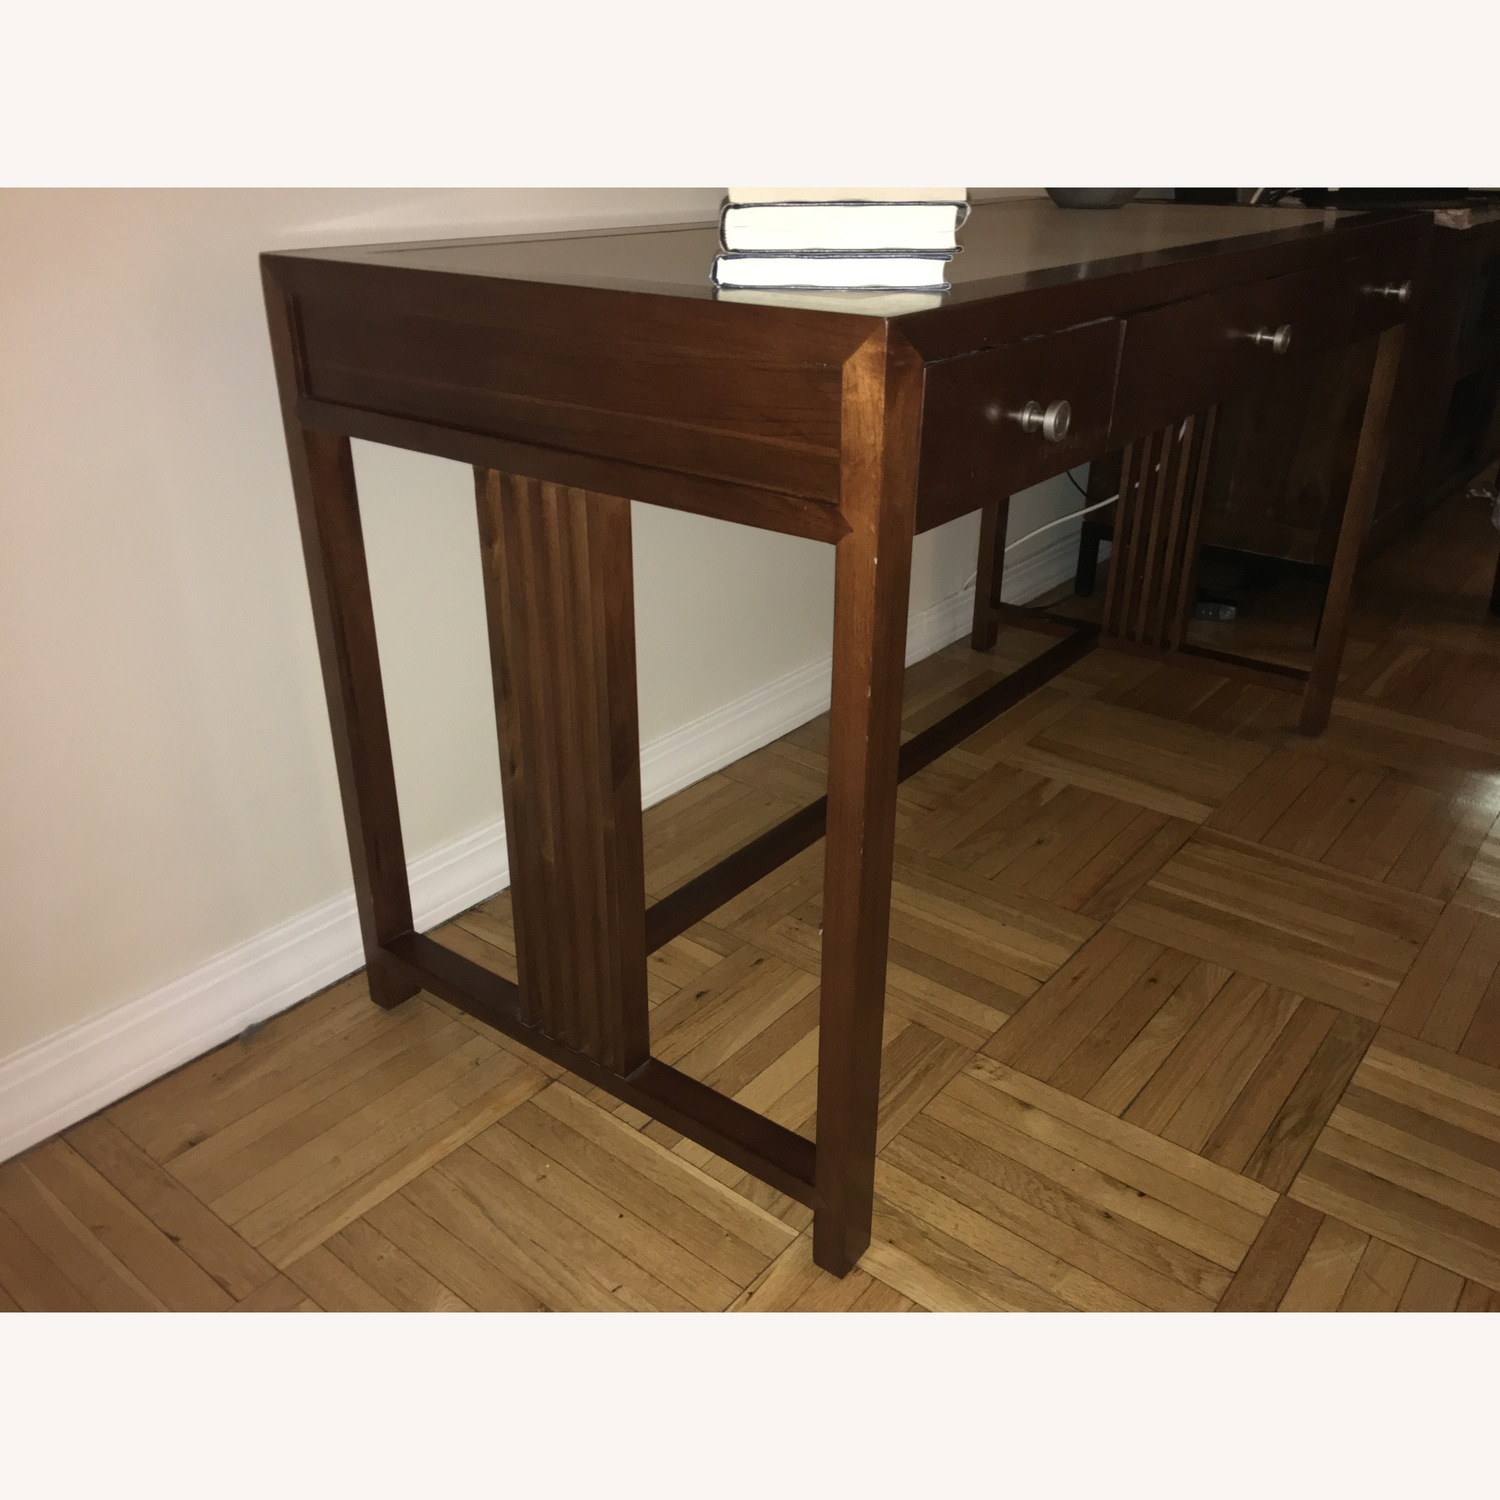 Crate & Barrel Adler Desk - image-3